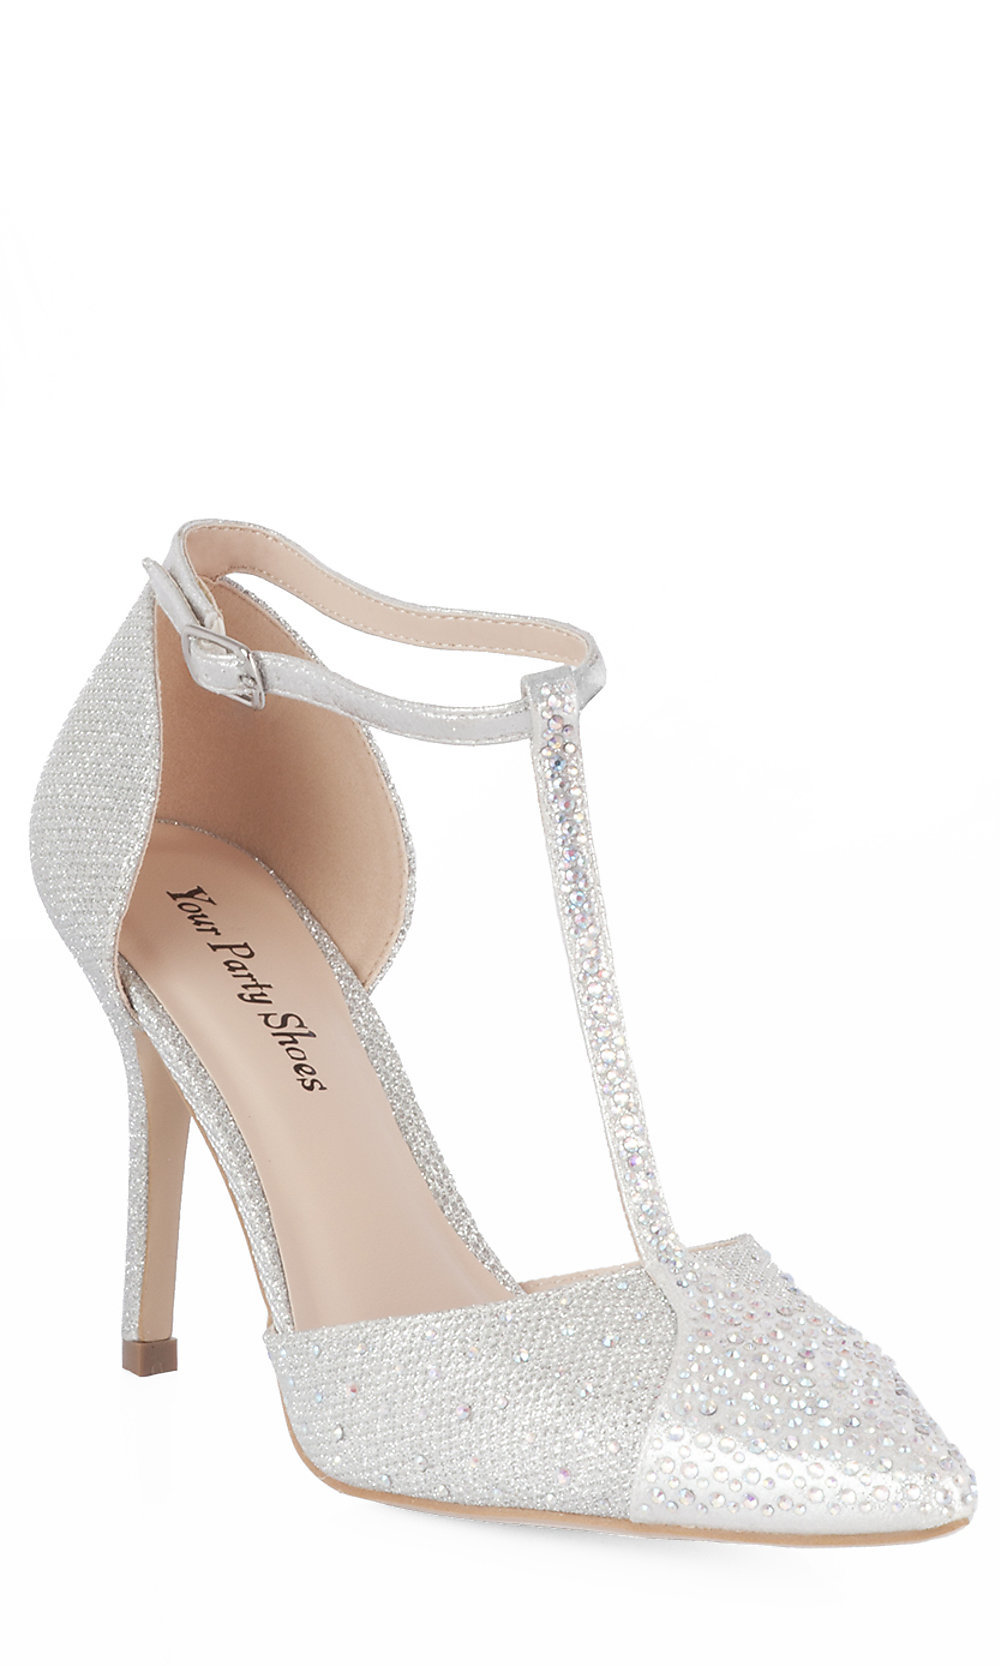 Silver Dress Shoes Closed Toe